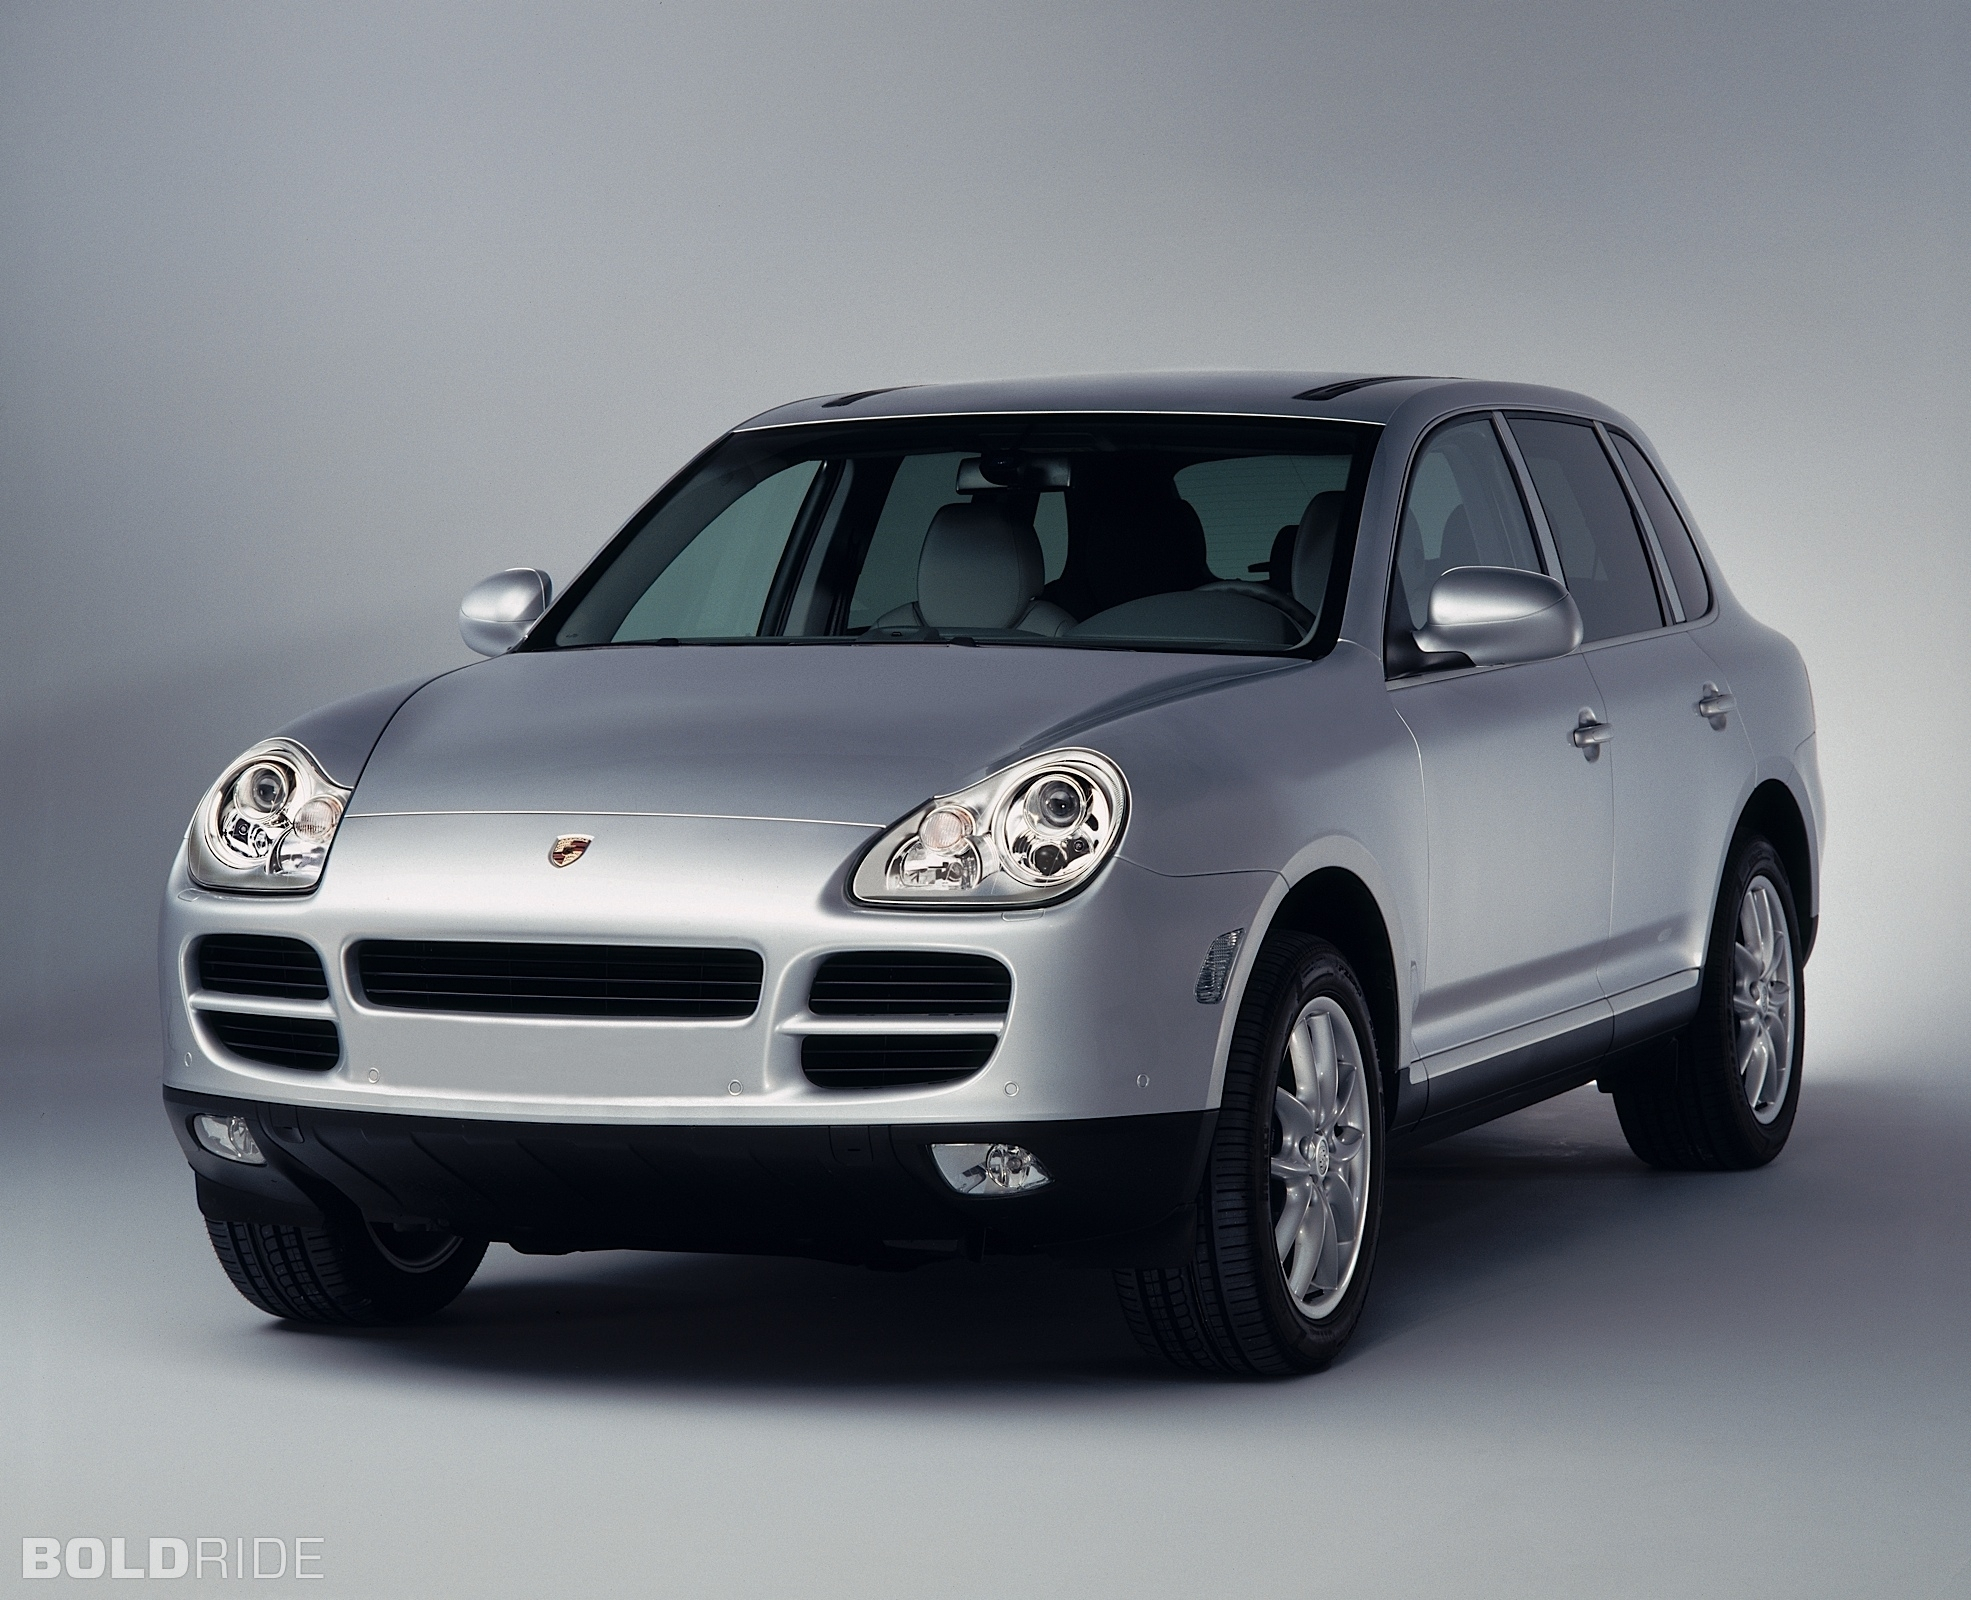 2004 porsche cayenne information and photos zombiedrive. Black Bedroom Furniture Sets. Home Design Ideas